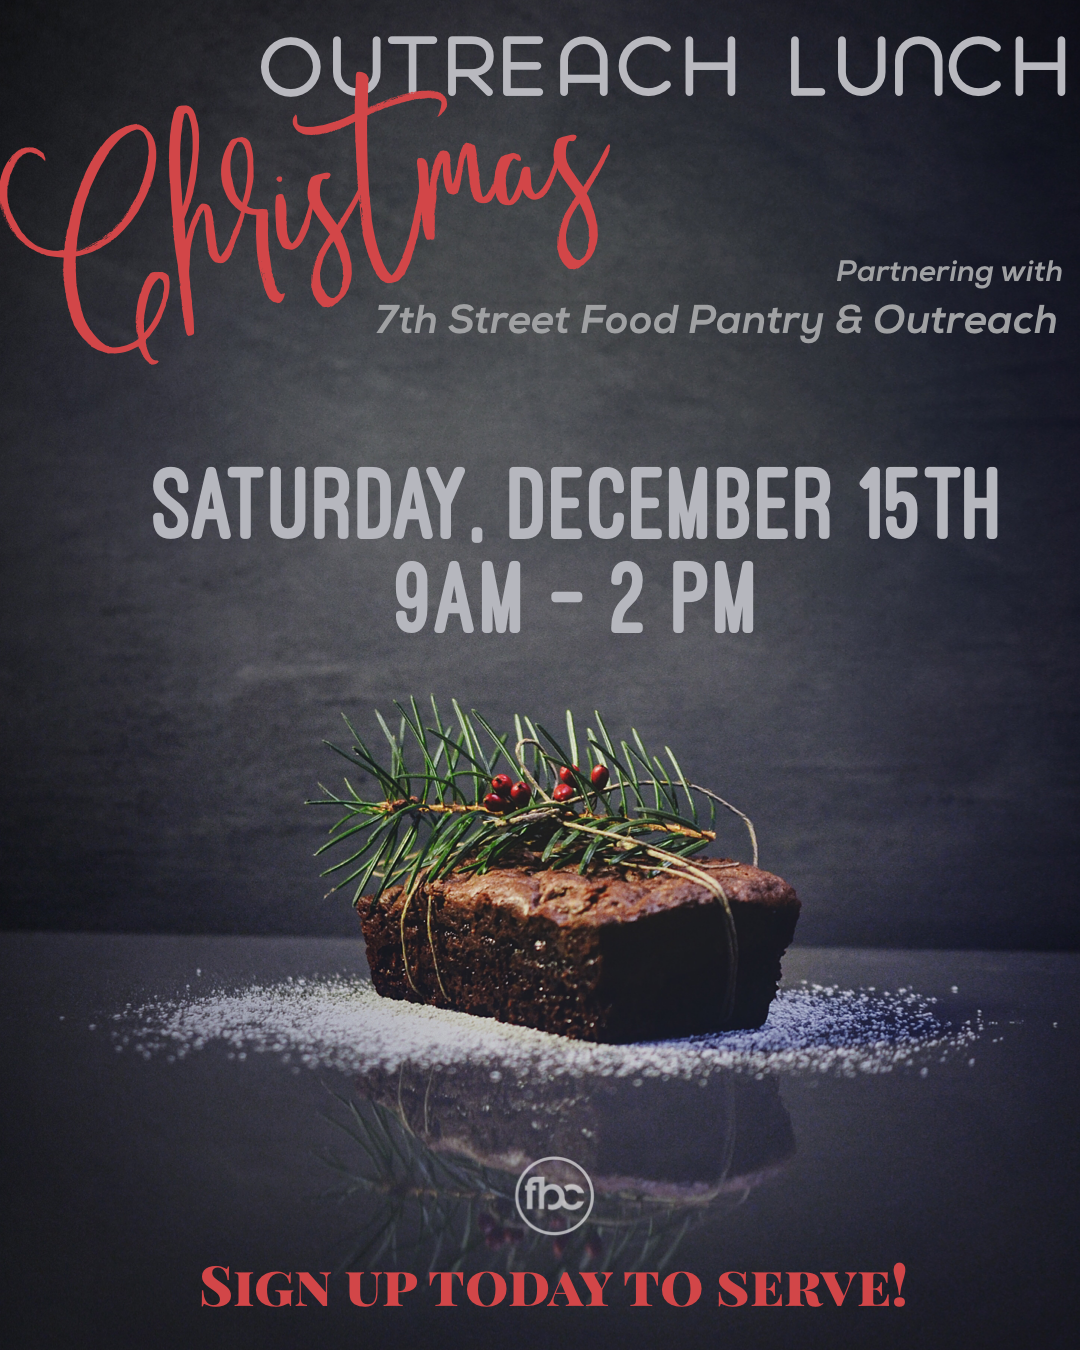 Christmas Outreach - Sunday, December 2nd 10:30 am Service